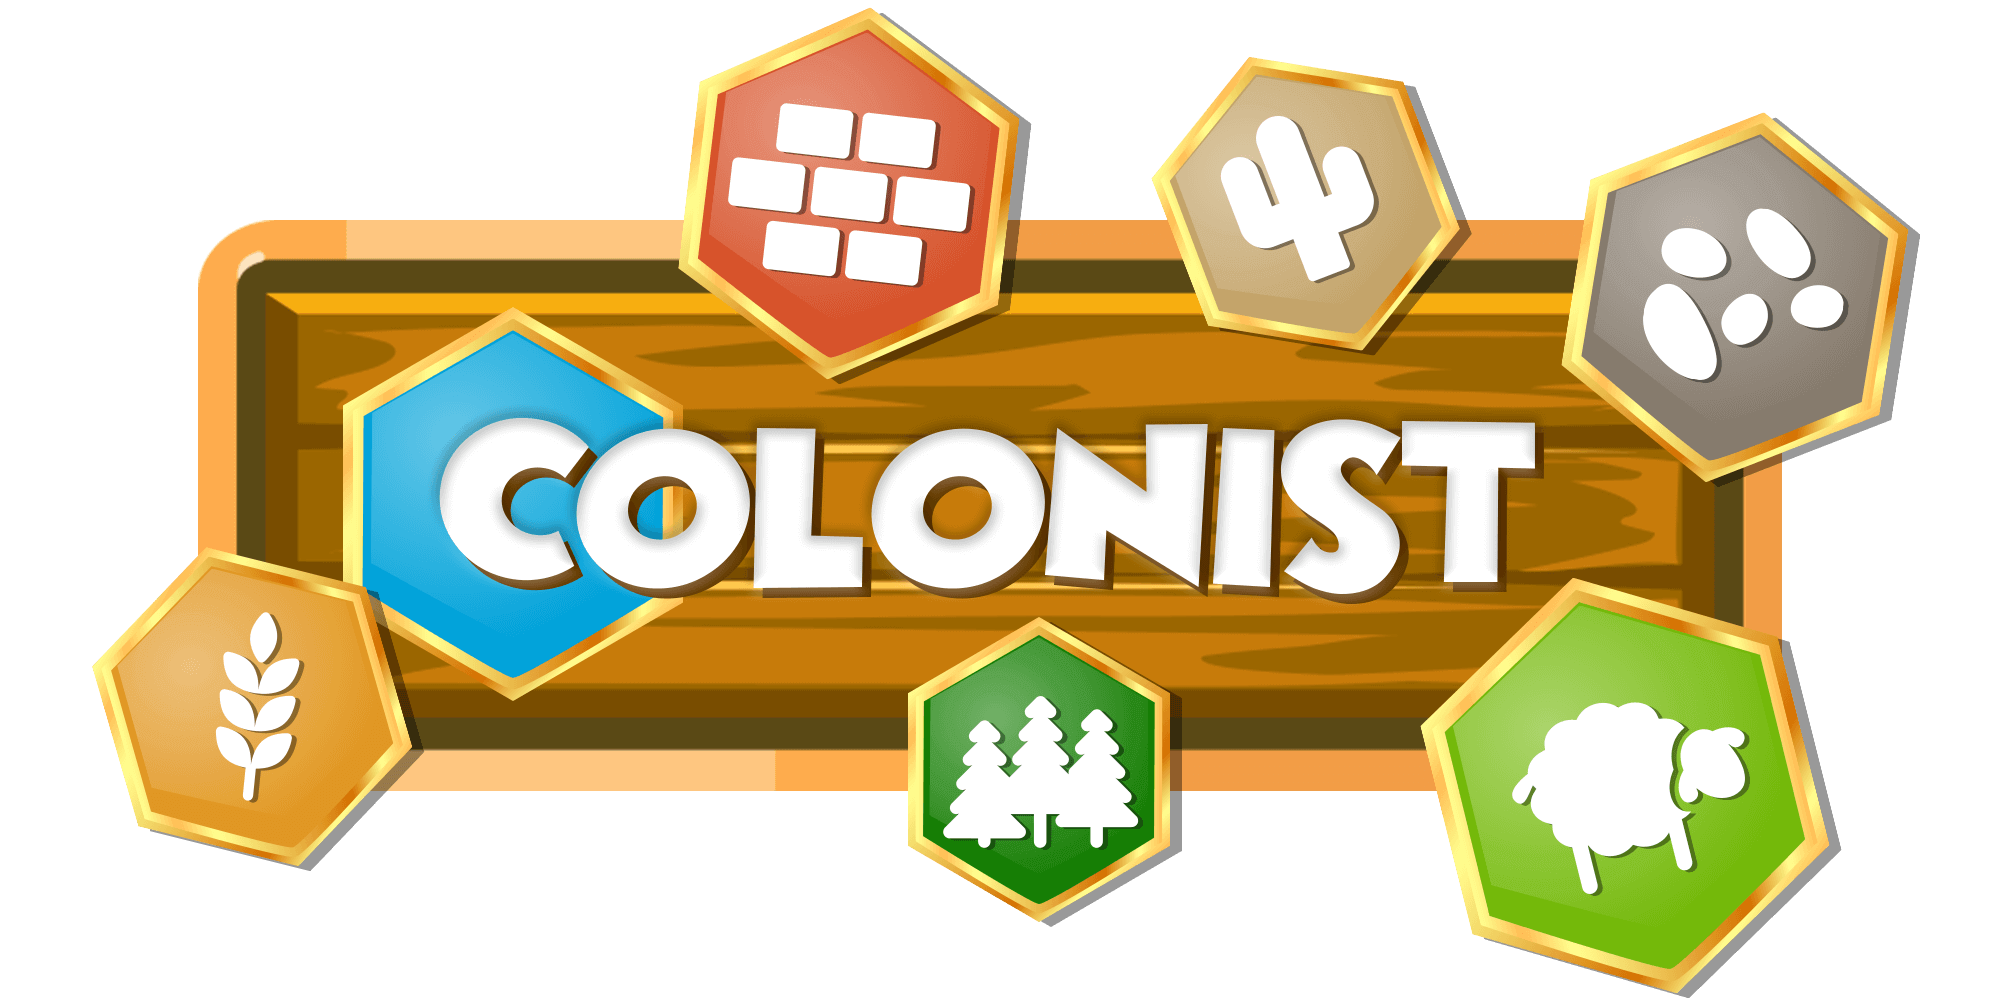 Colonist Strategies